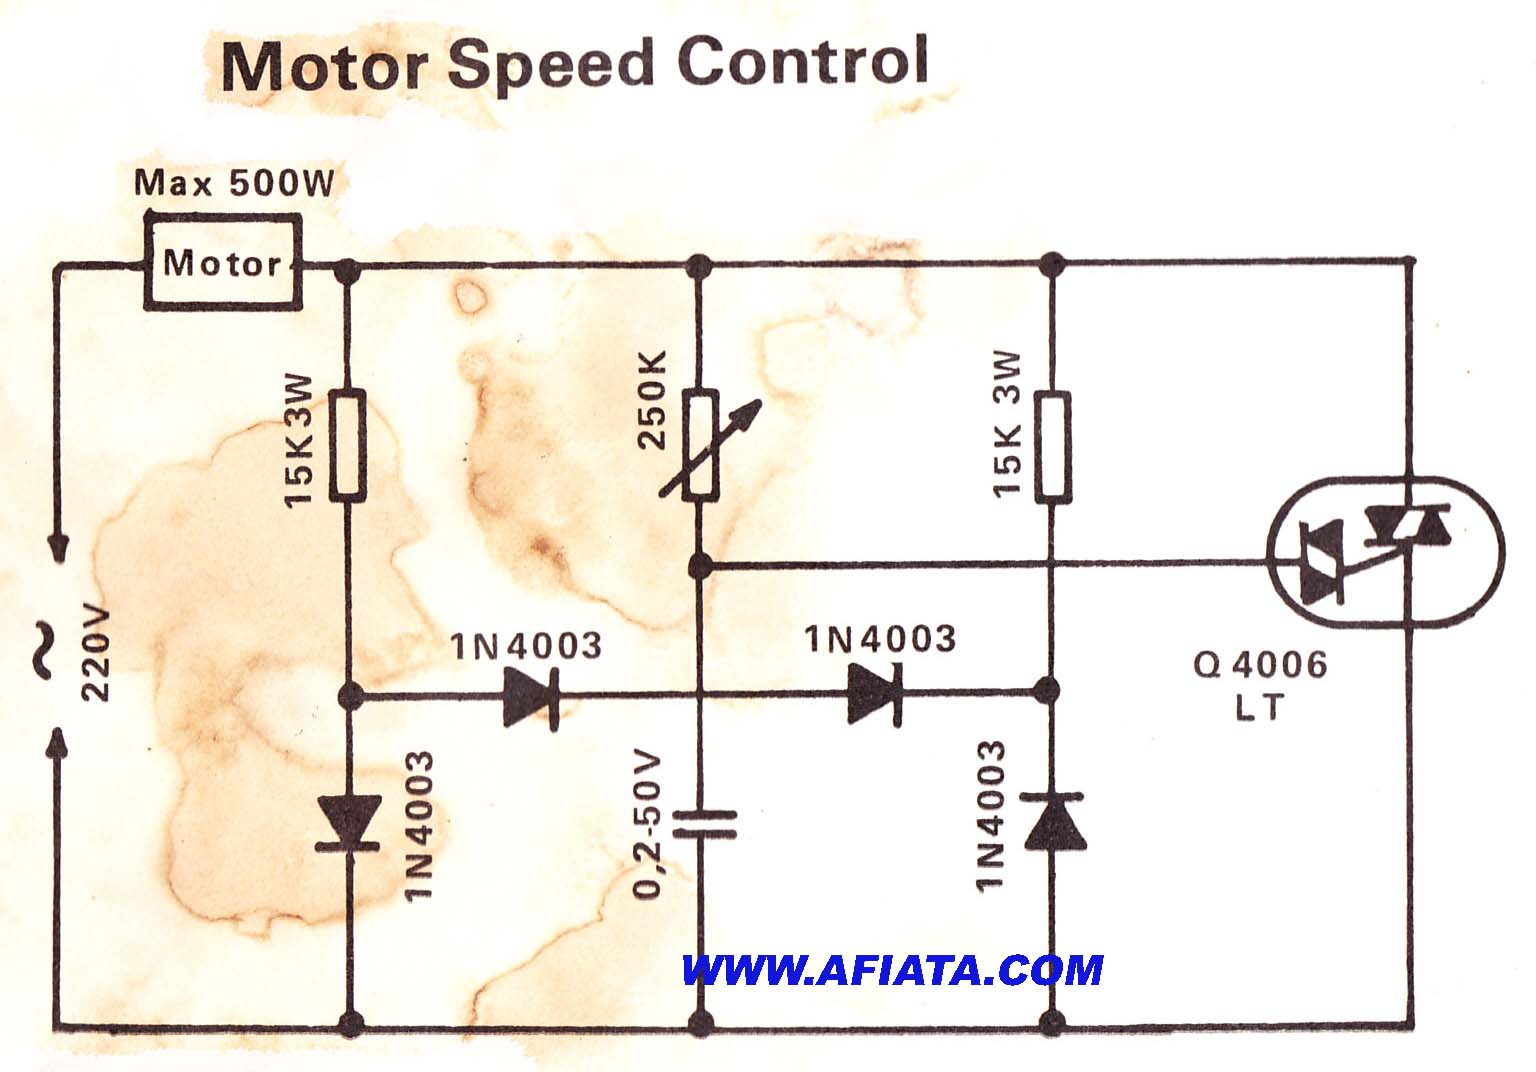 hight resolution of control of the motor speeds